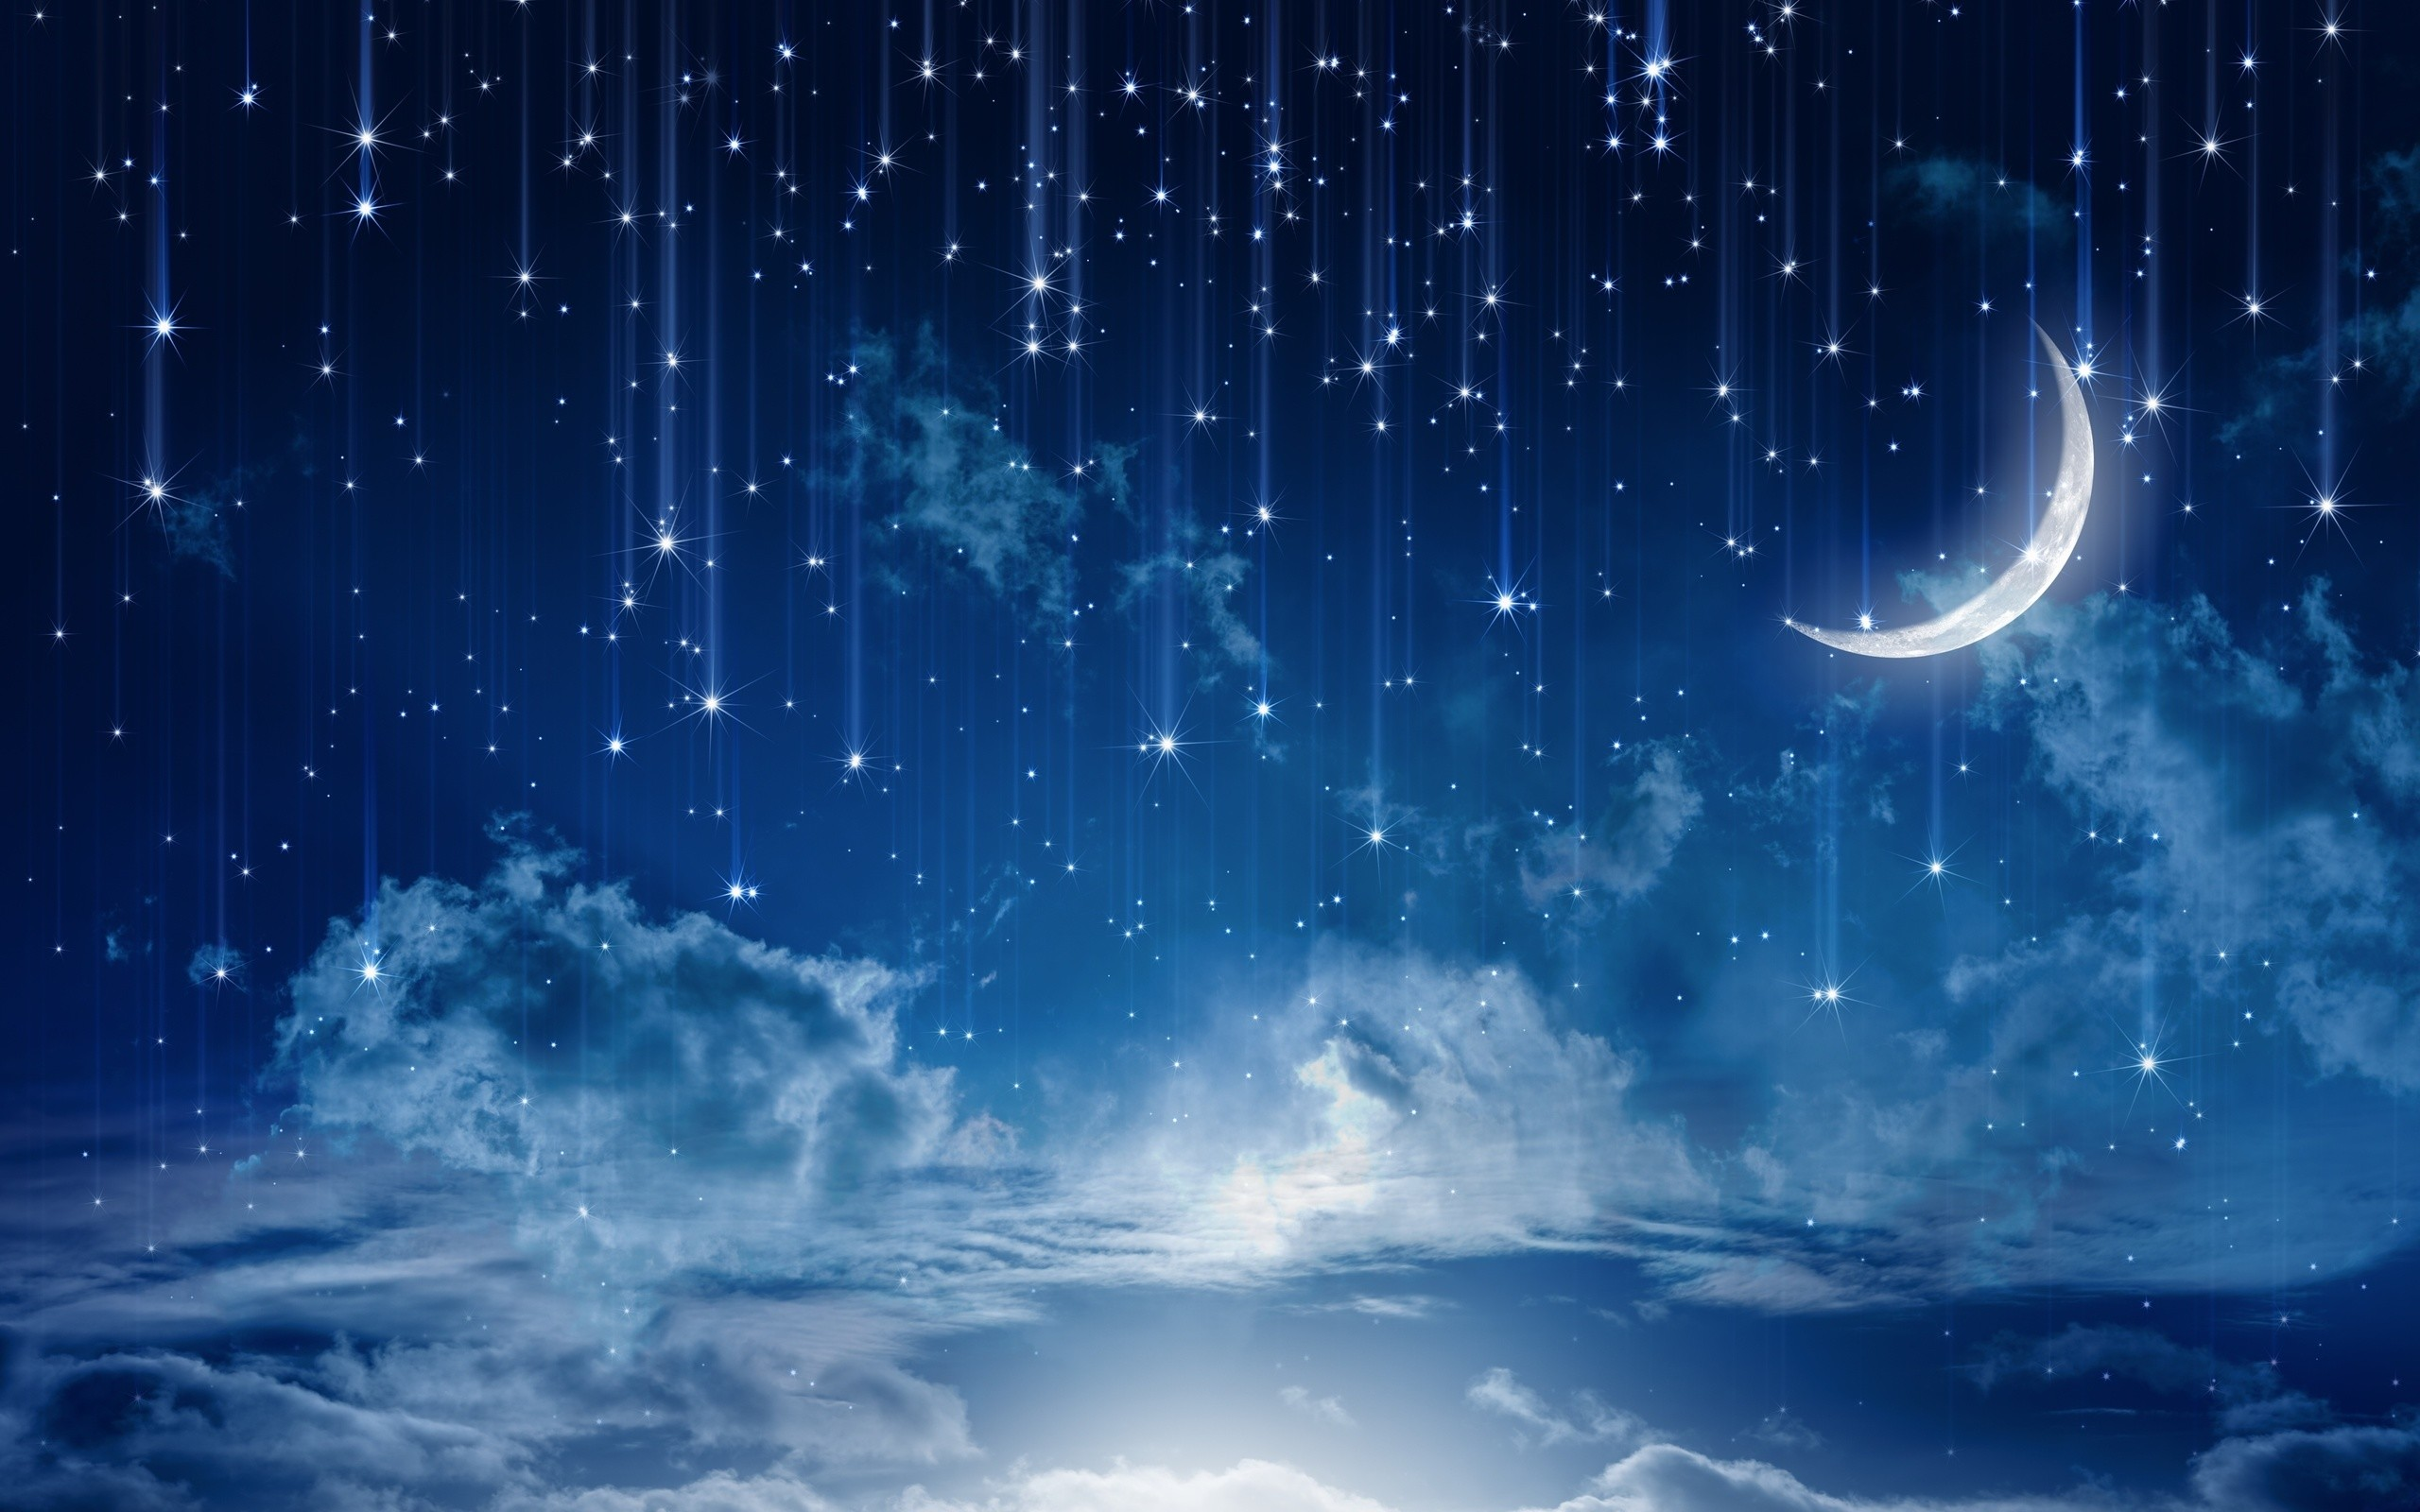 2560x1600 sky moonlight nature night stars clouds rain landscape moon wallpaper .